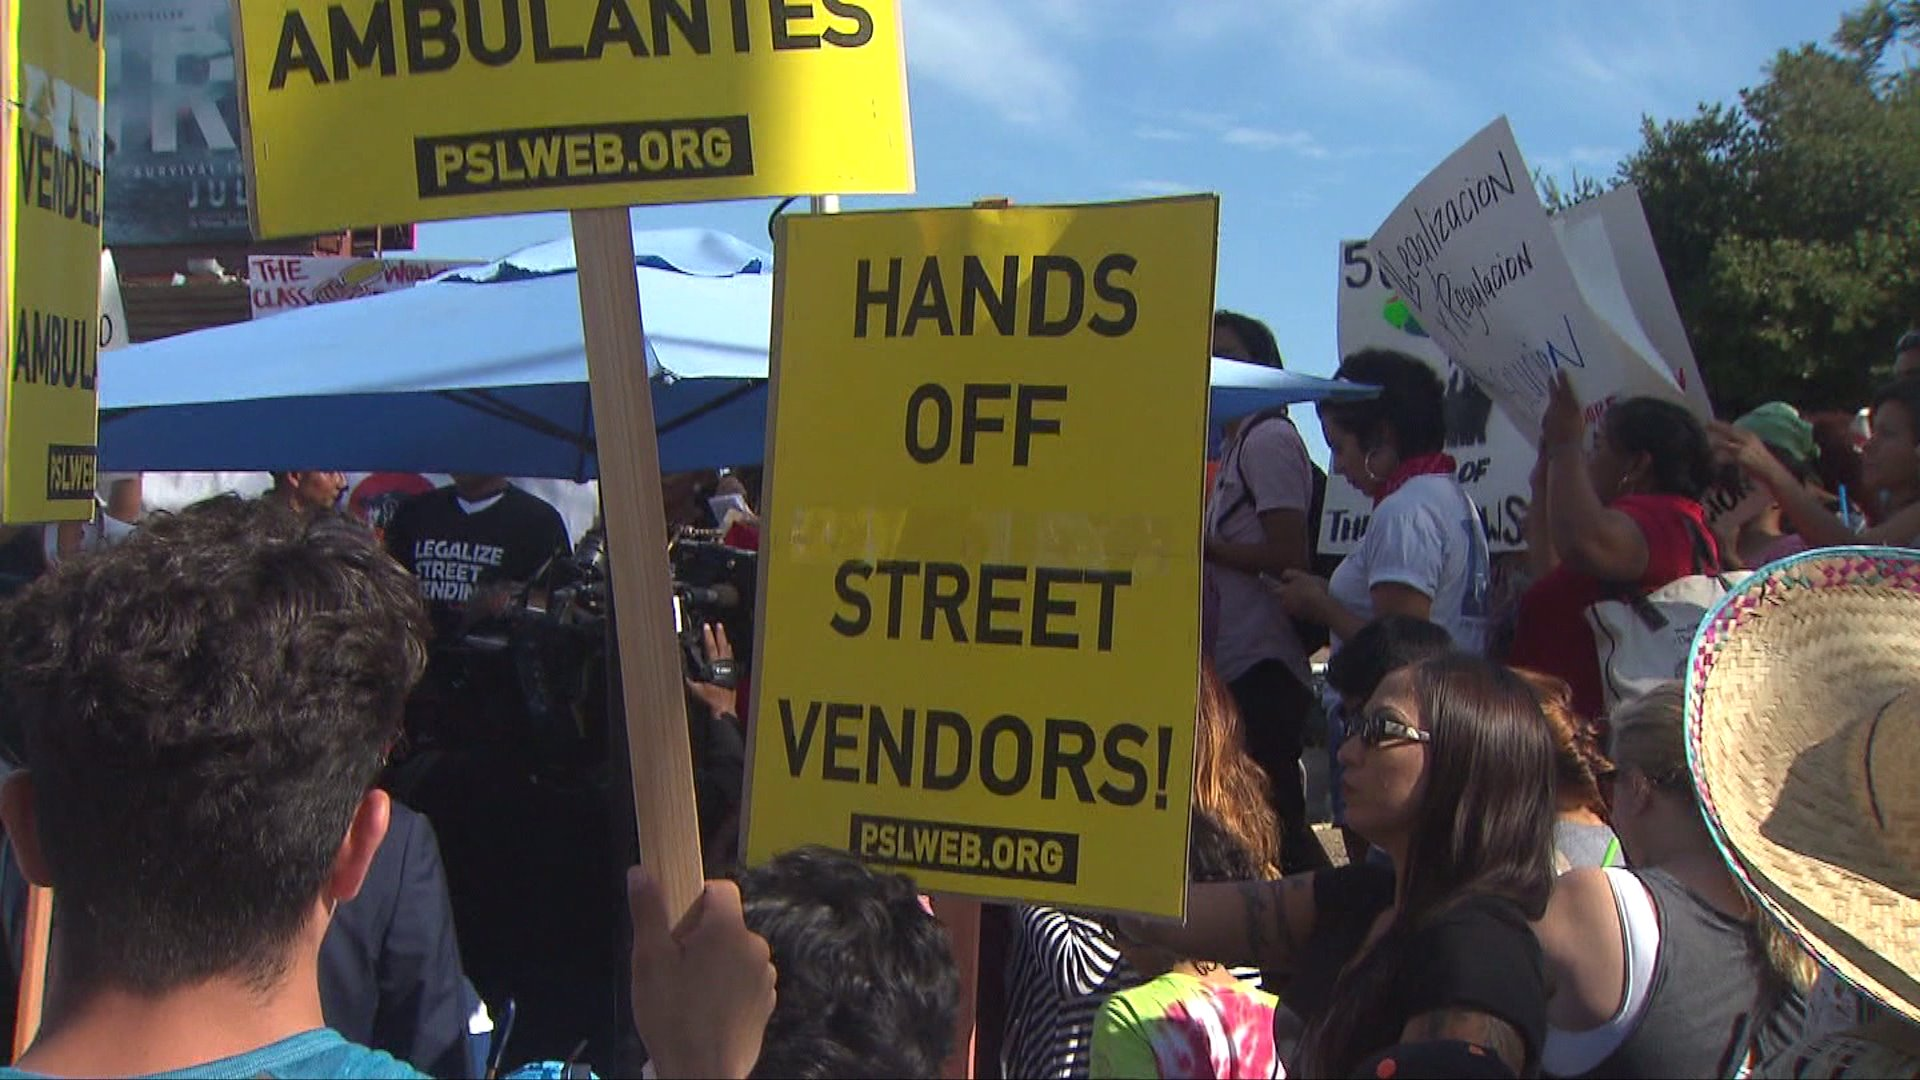 A rally for Los Angeles street vendors was held in Hollywood on July 27, 2017. (Credit: KTLA)